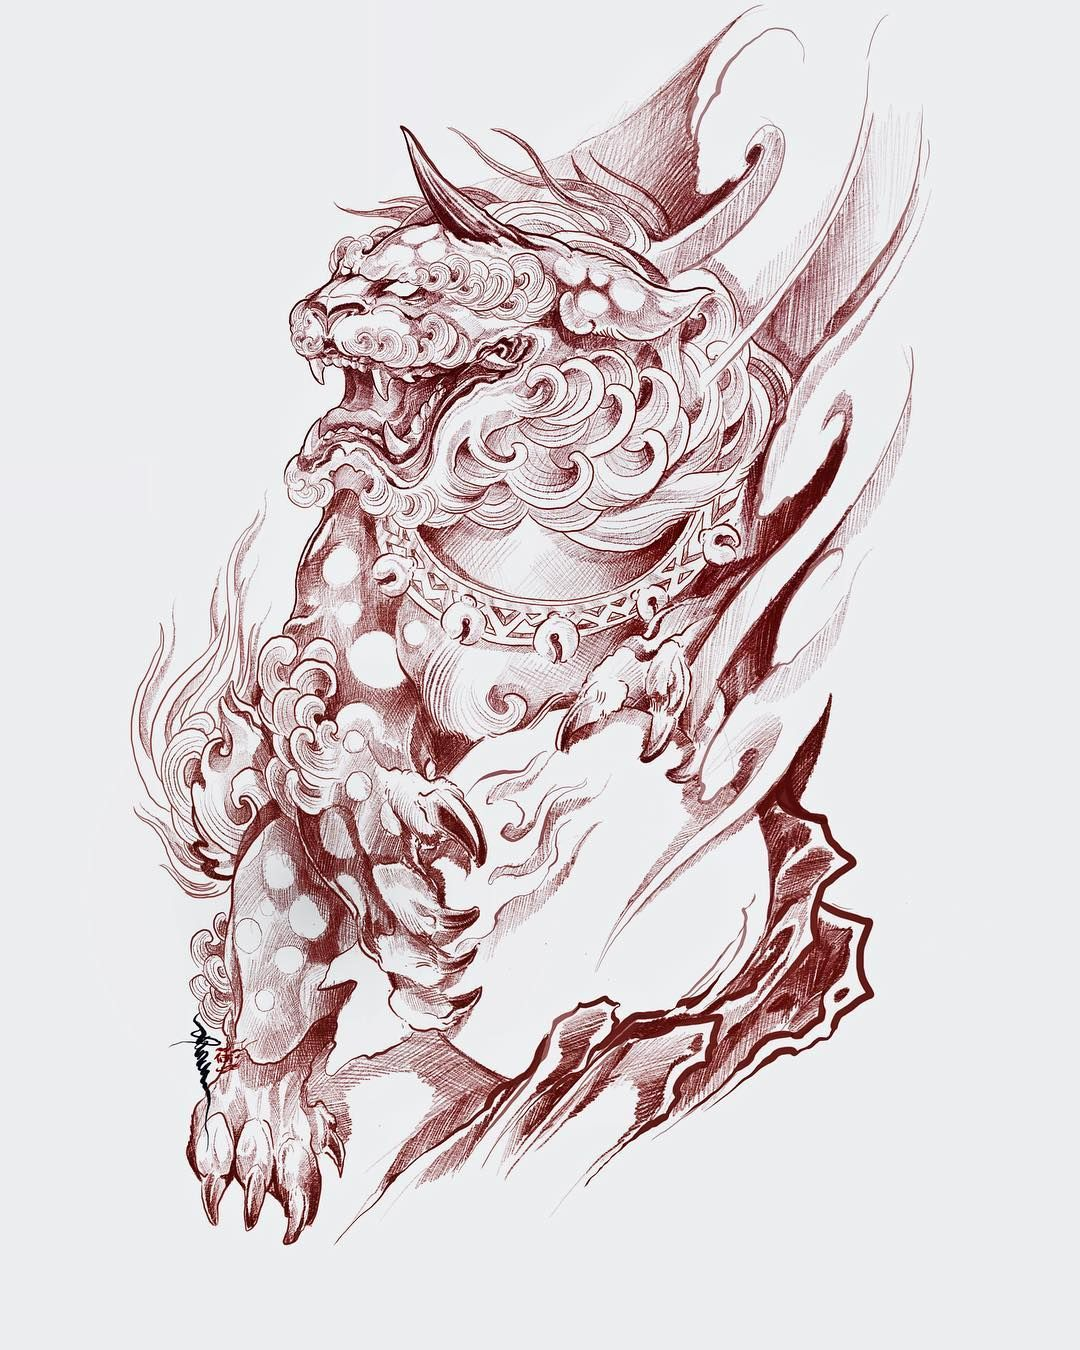 Avtomaticheskij Alternativnyj Tekst Otsutstvuet Japanese Tattoo Foo Dog Tattoo Design Japanese Tattoo Art